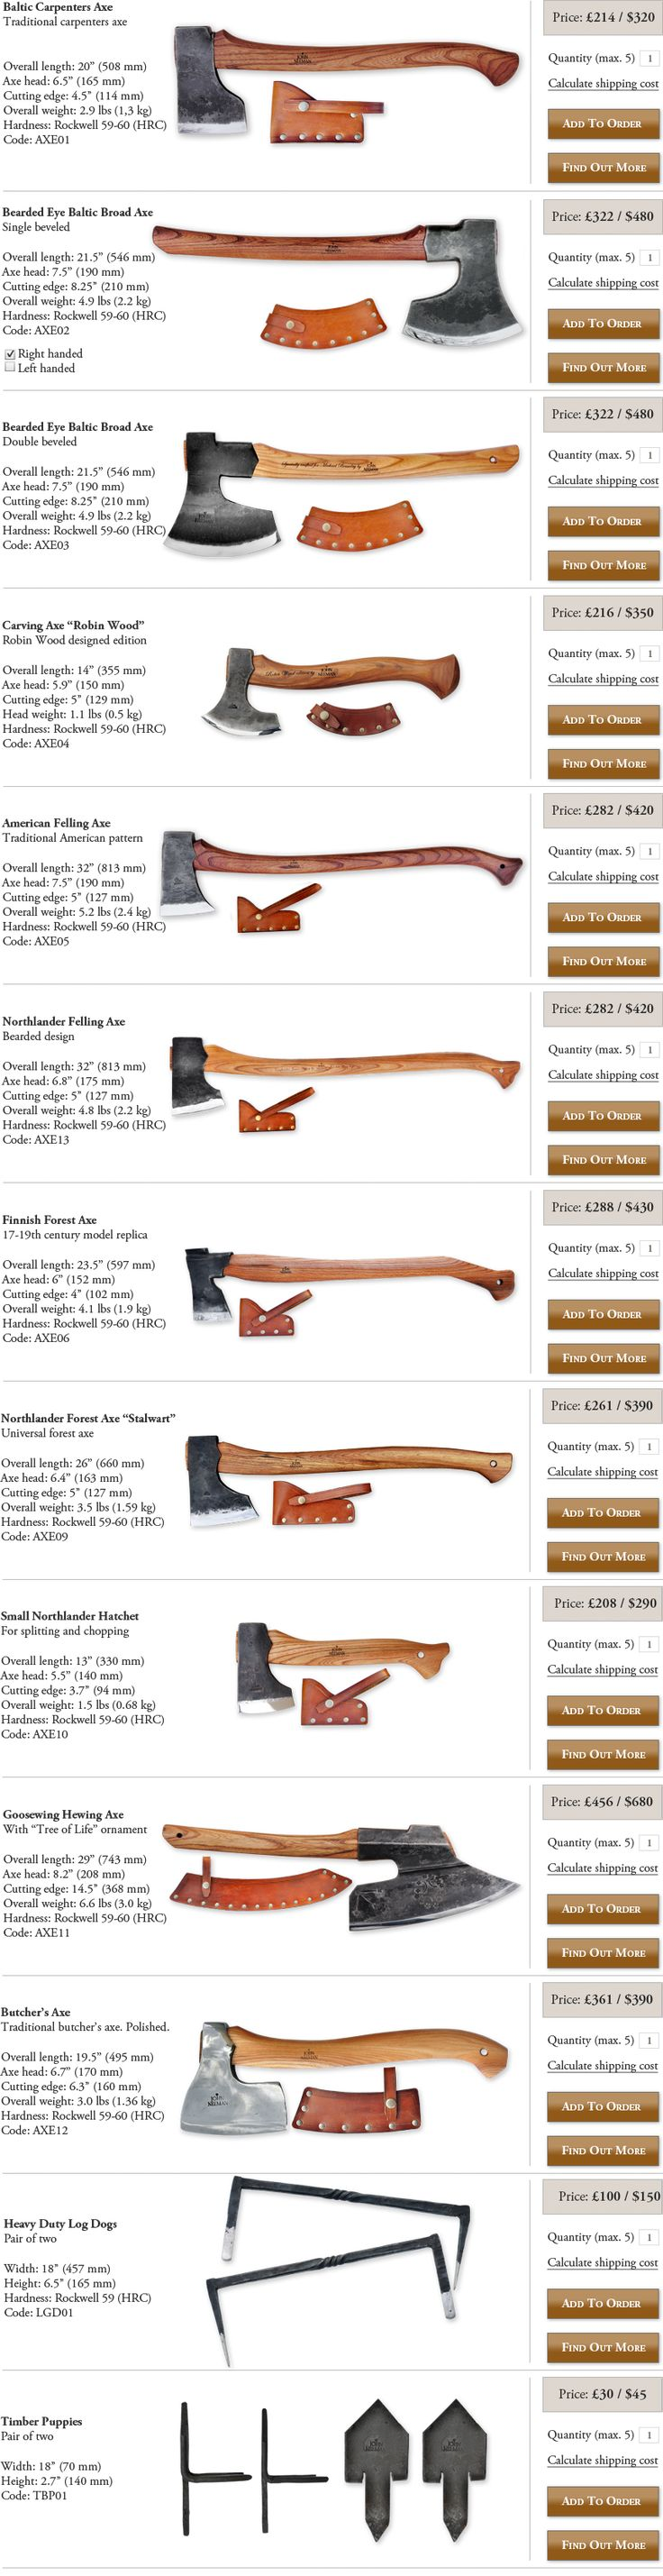 Neemantools. I like the carpenters axe, carving axe, American felling axe, and the Northlander forest axe.